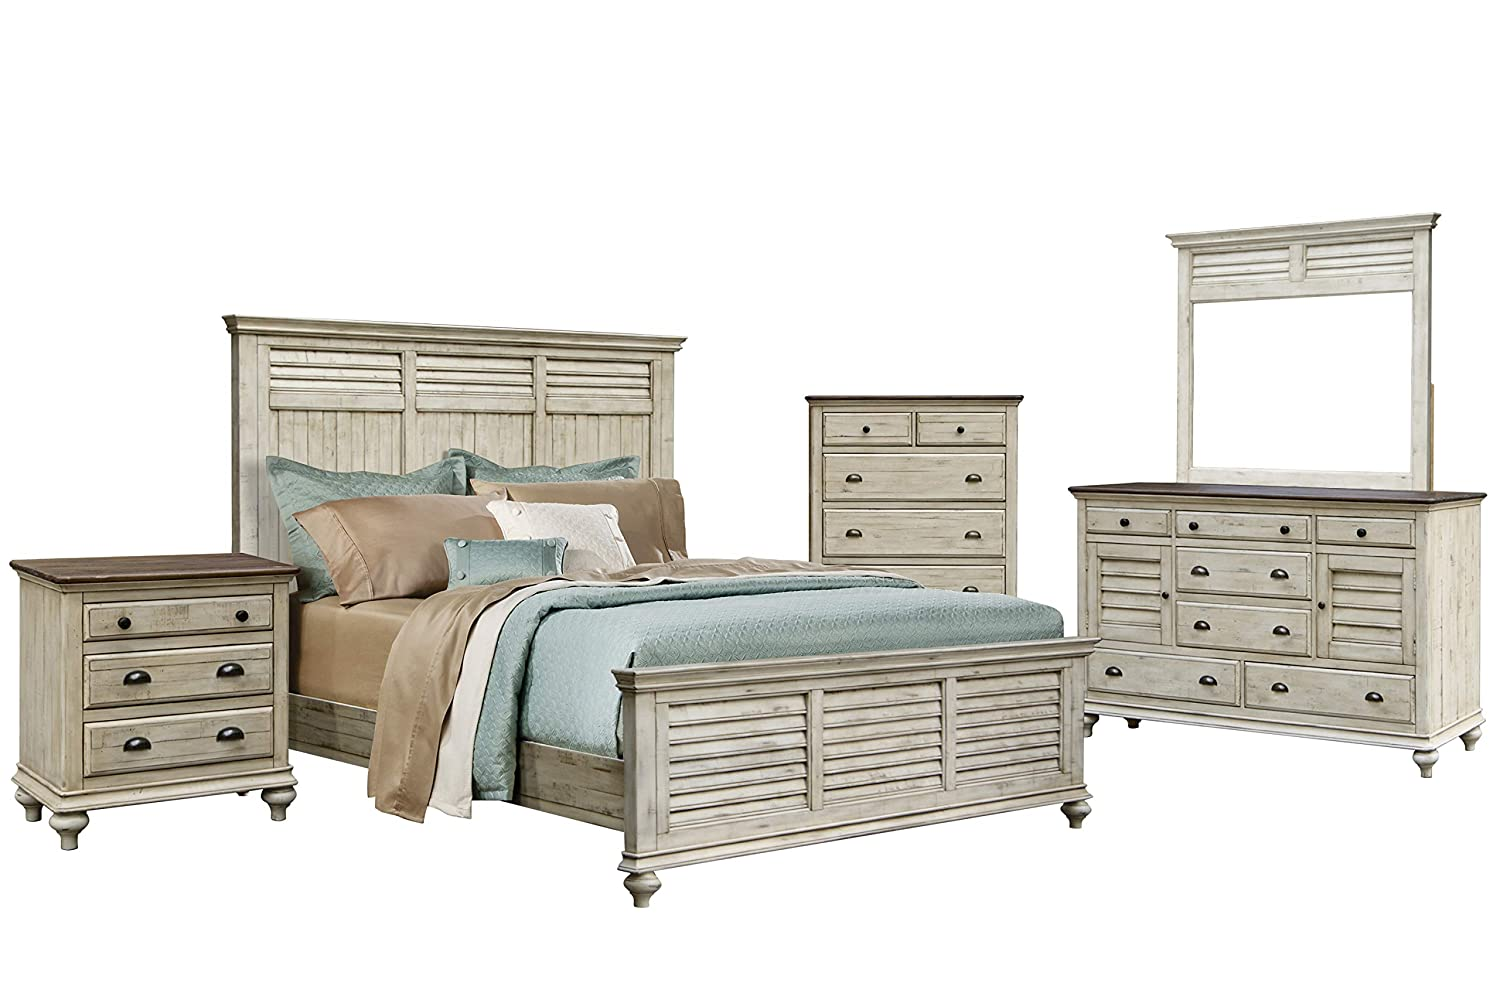 Sunset Trading Shades Award-winning store of Sand Antique white Natural Bedroom Set famous